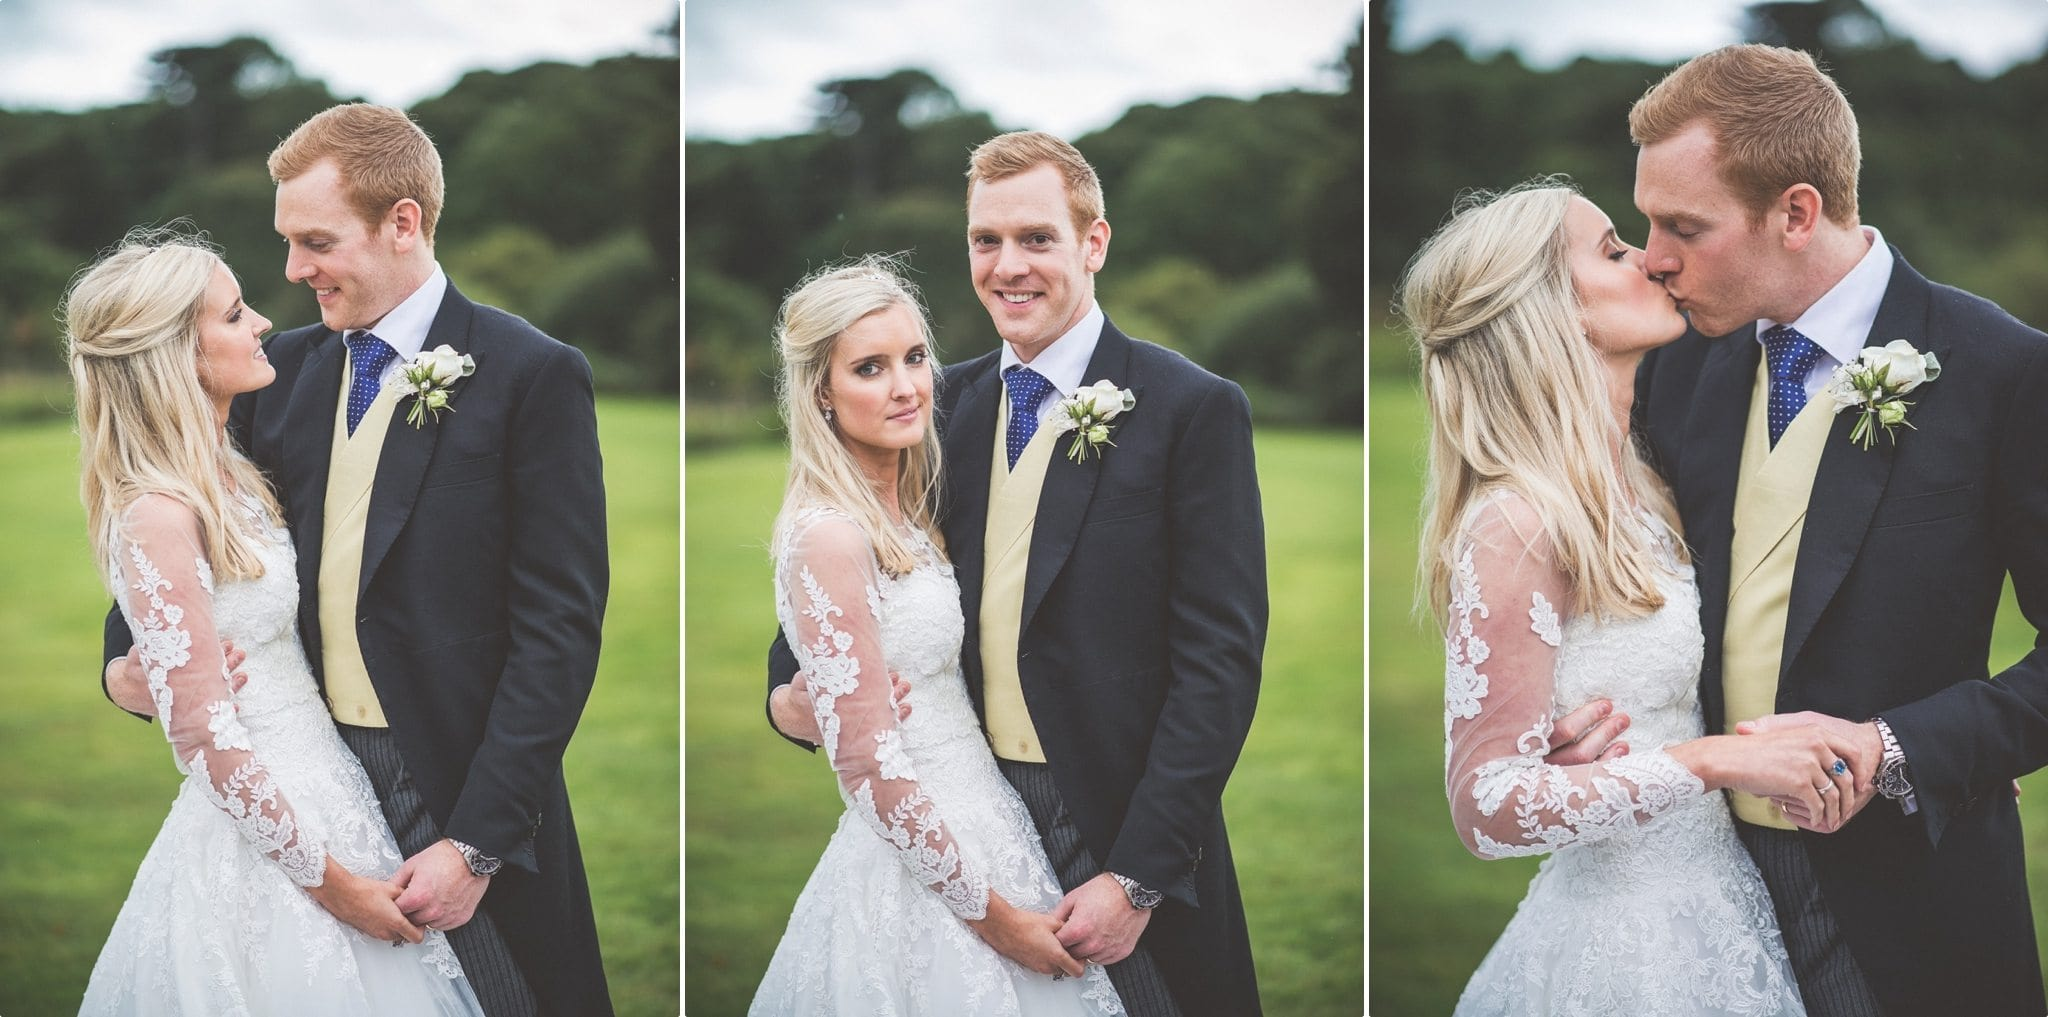 Bride and Groom married at St Audries Park